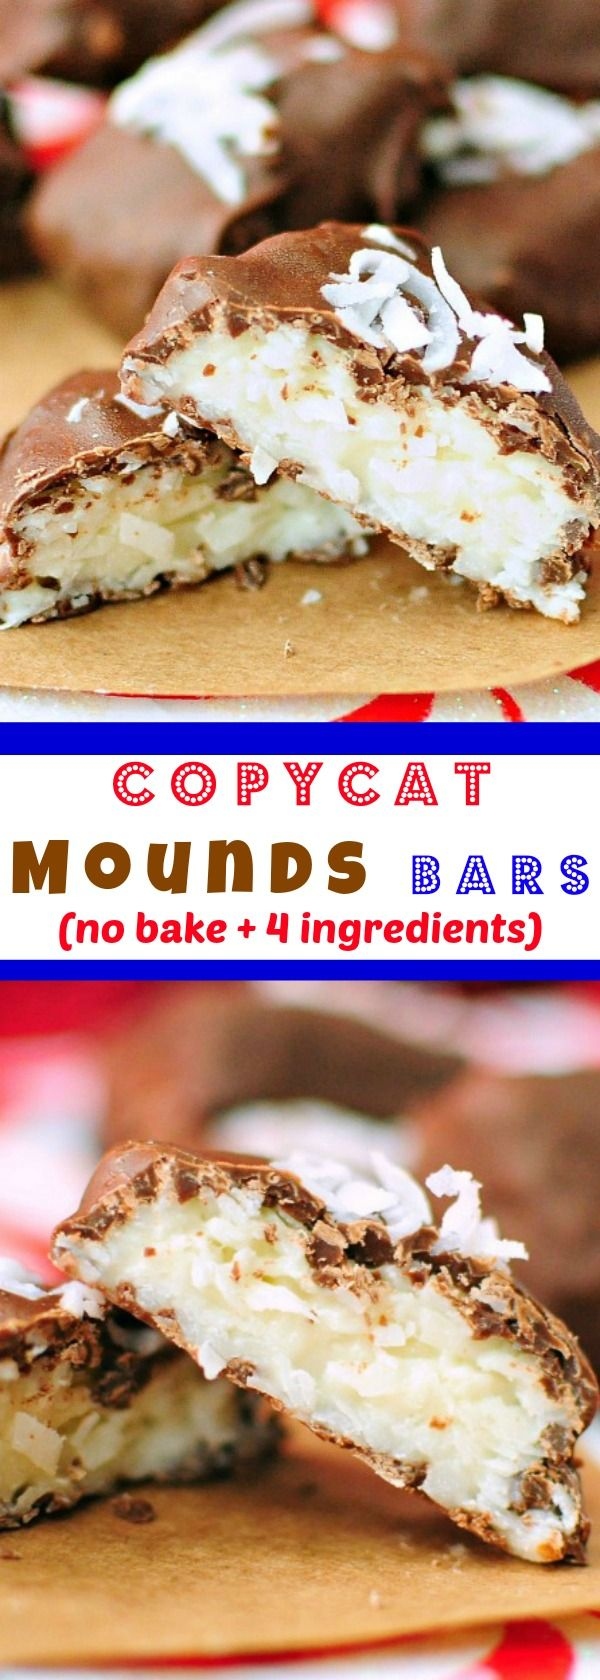 4 Ingredient Coconut Cream Bars - an easy no-bake dessert that tastes like a mounds bar!!: